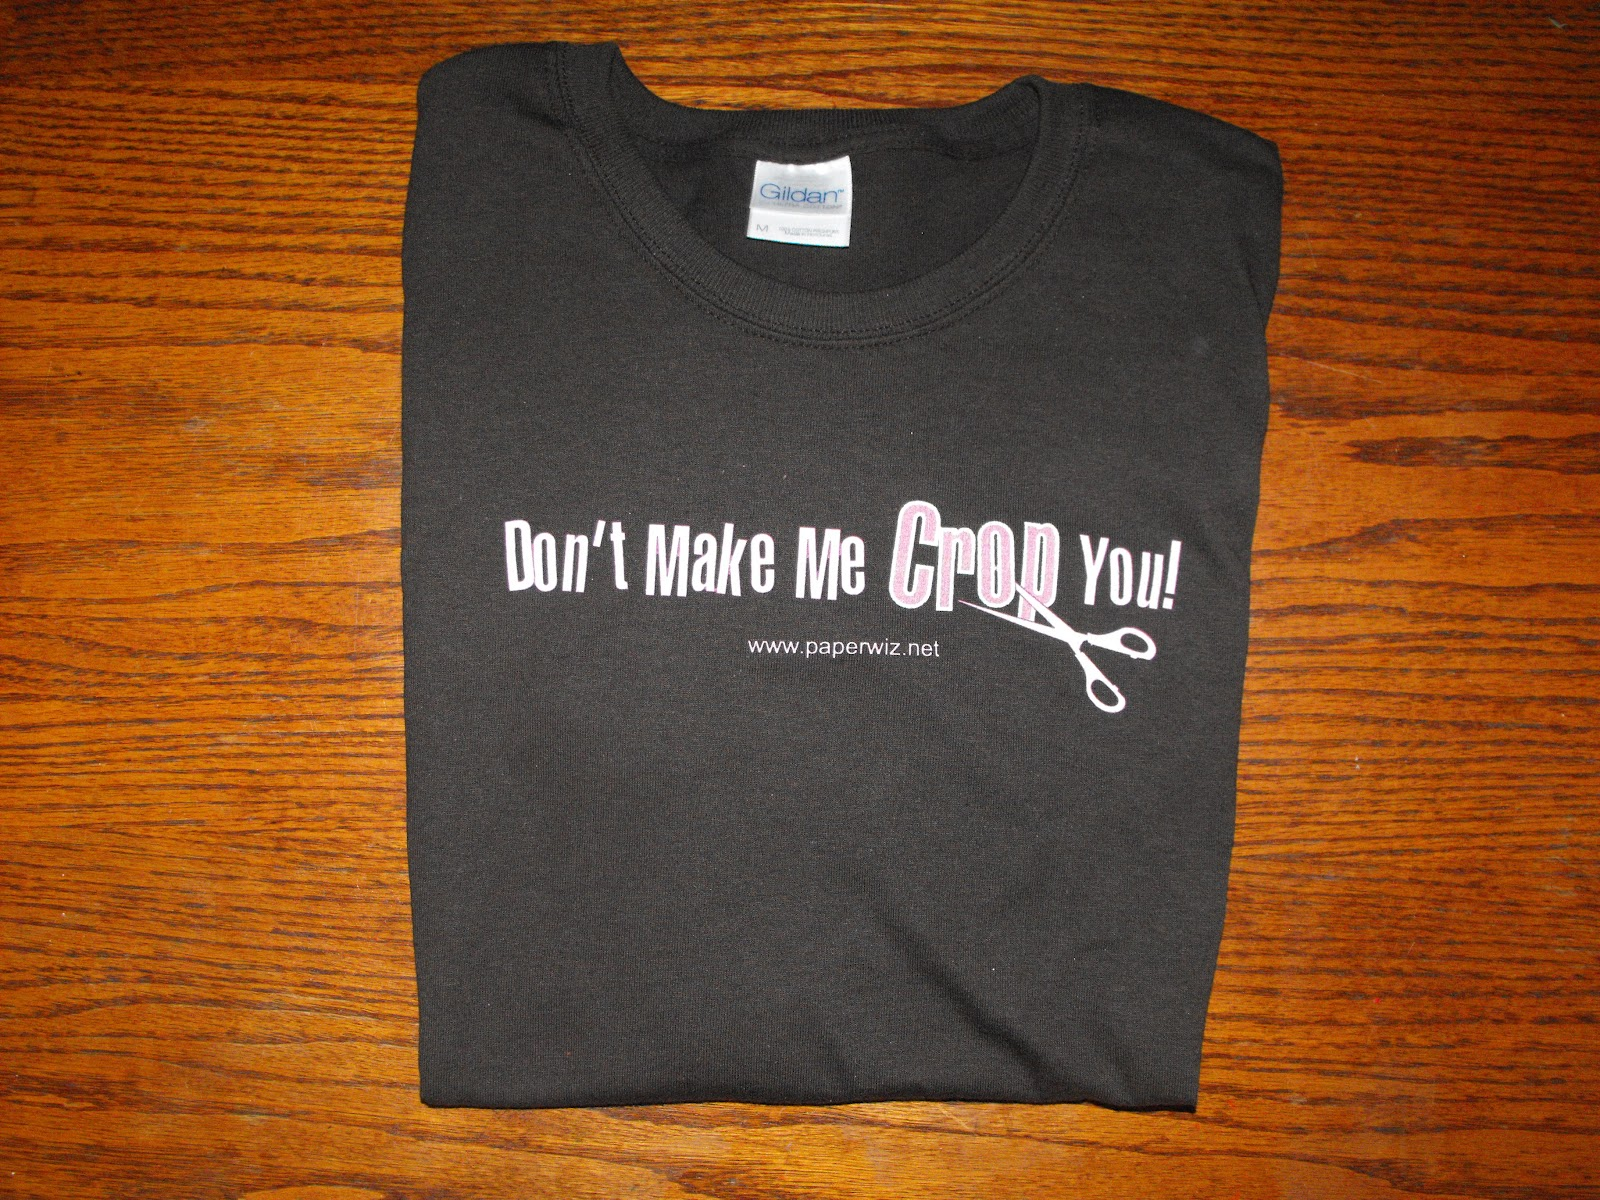 Lauren Loves To Scrap Funny T Shirt I Bought At The Scrapbook Expo